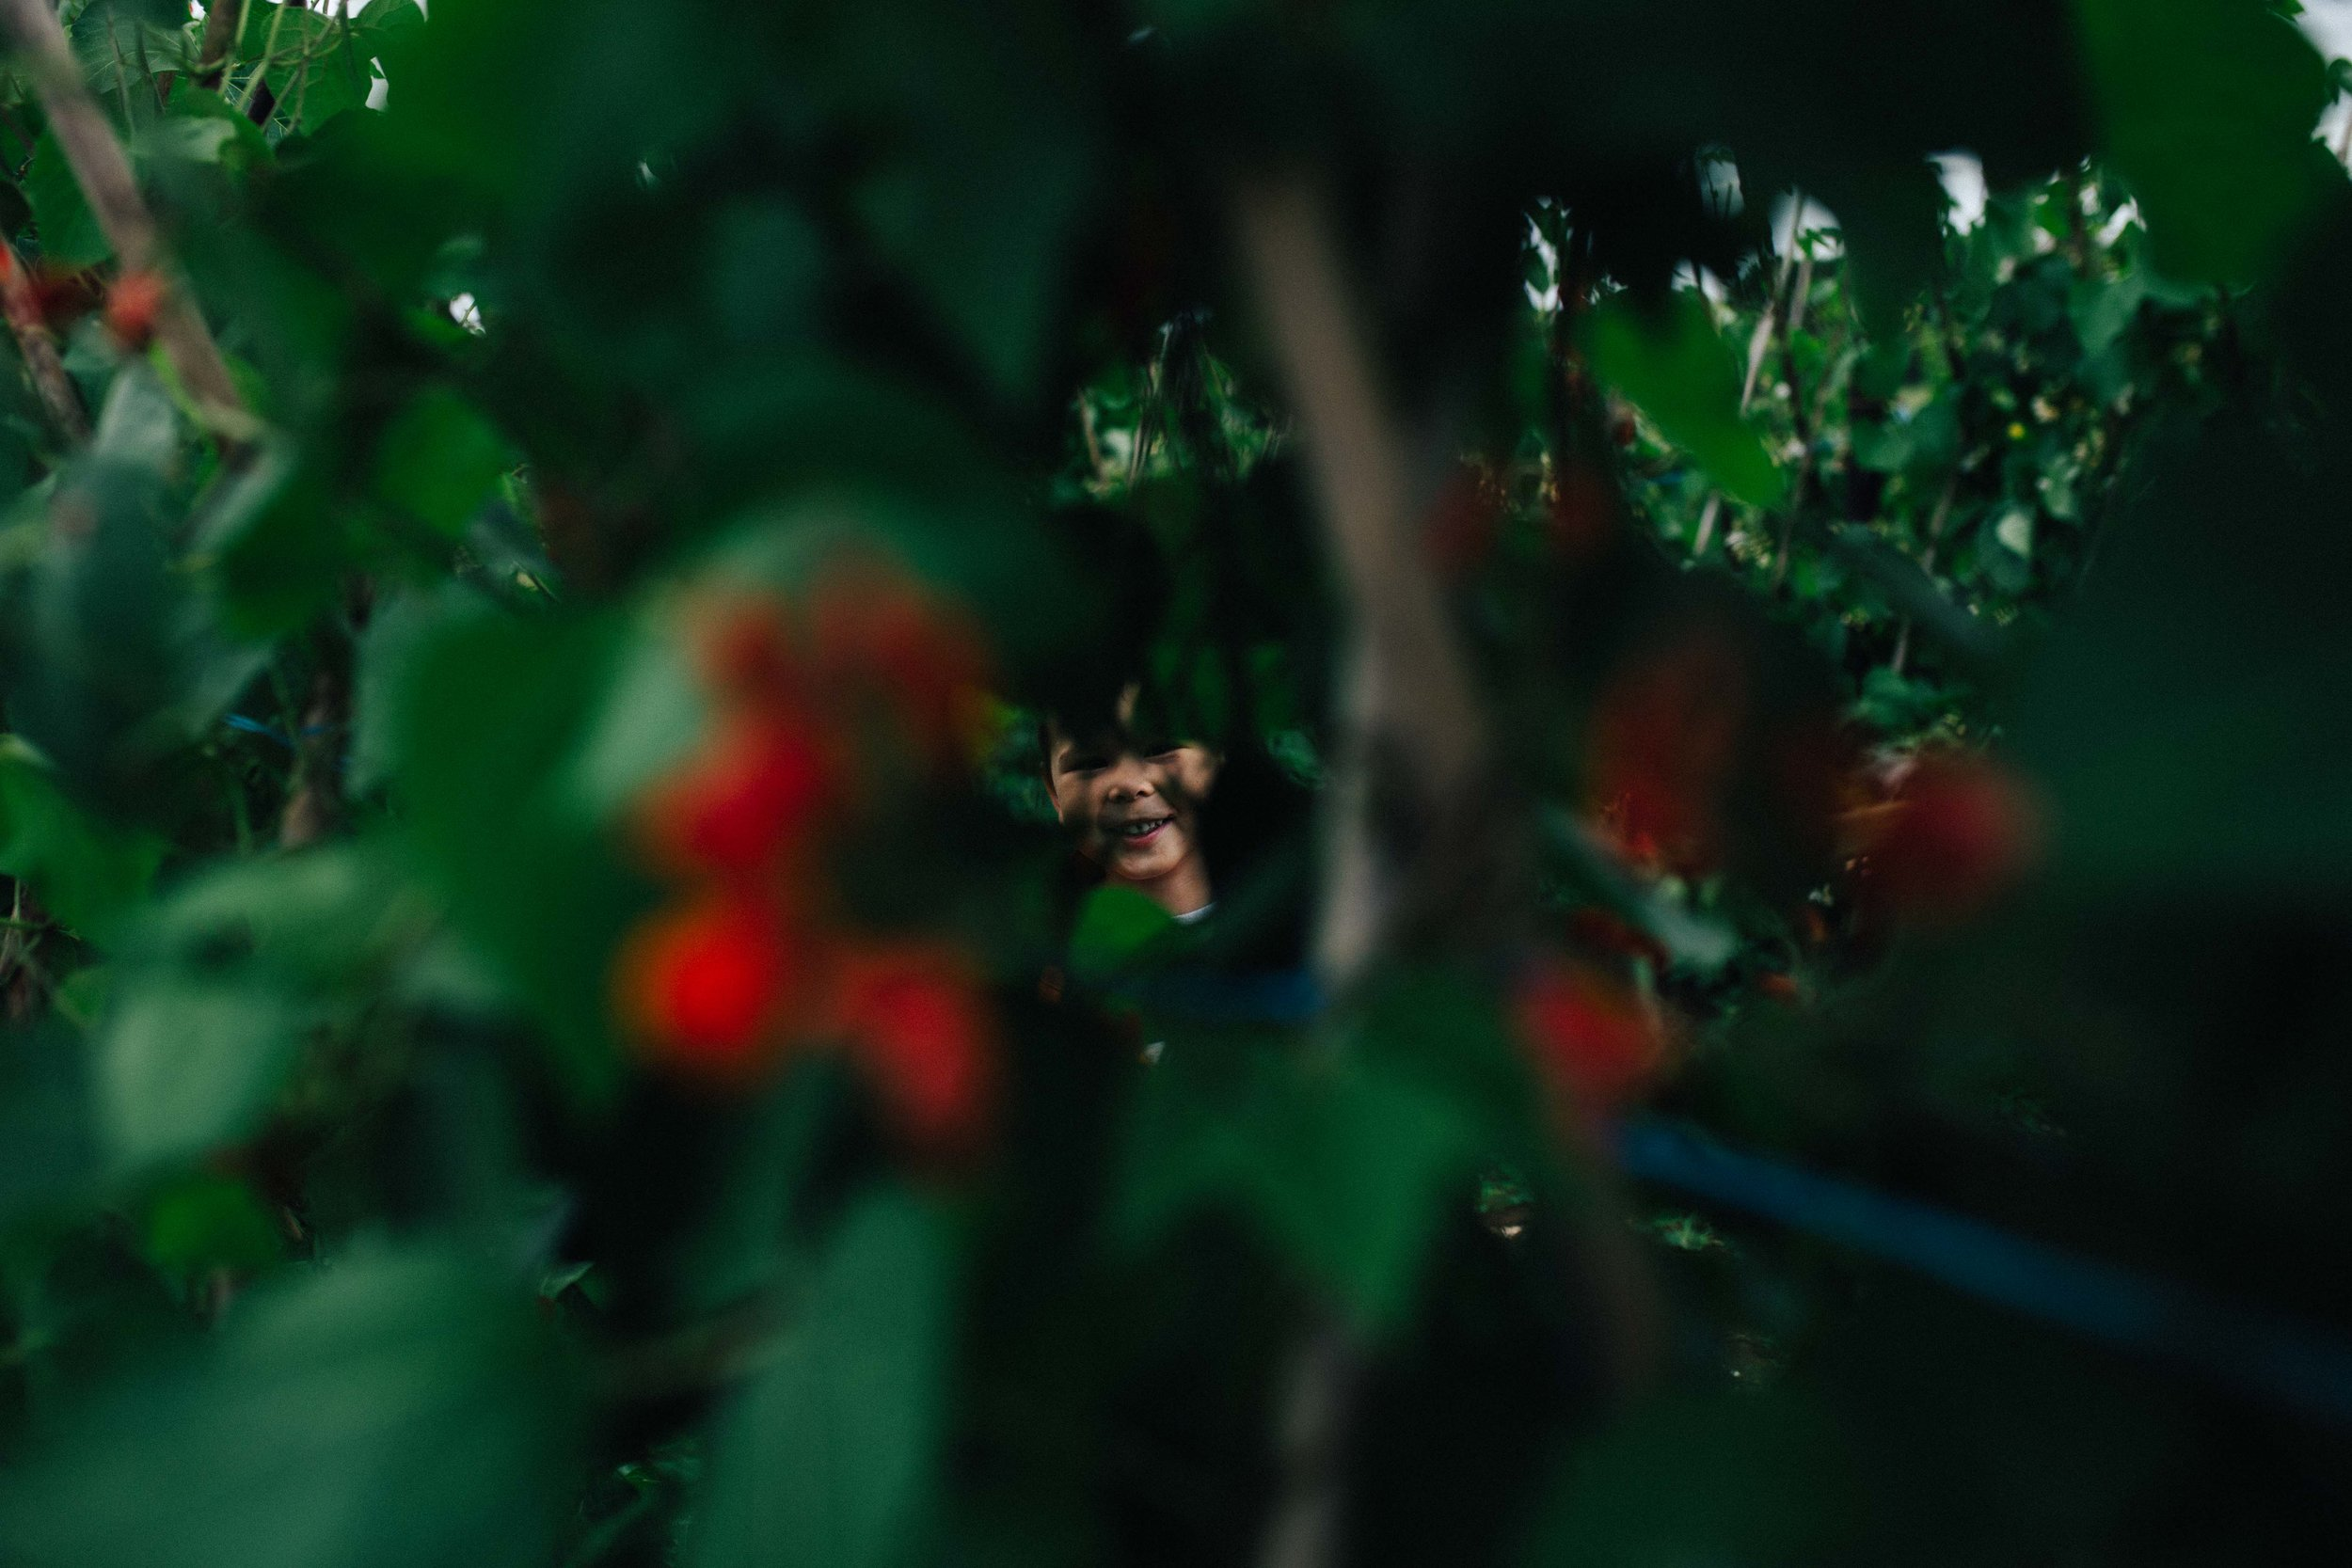 Child smiling and hiding behind plants